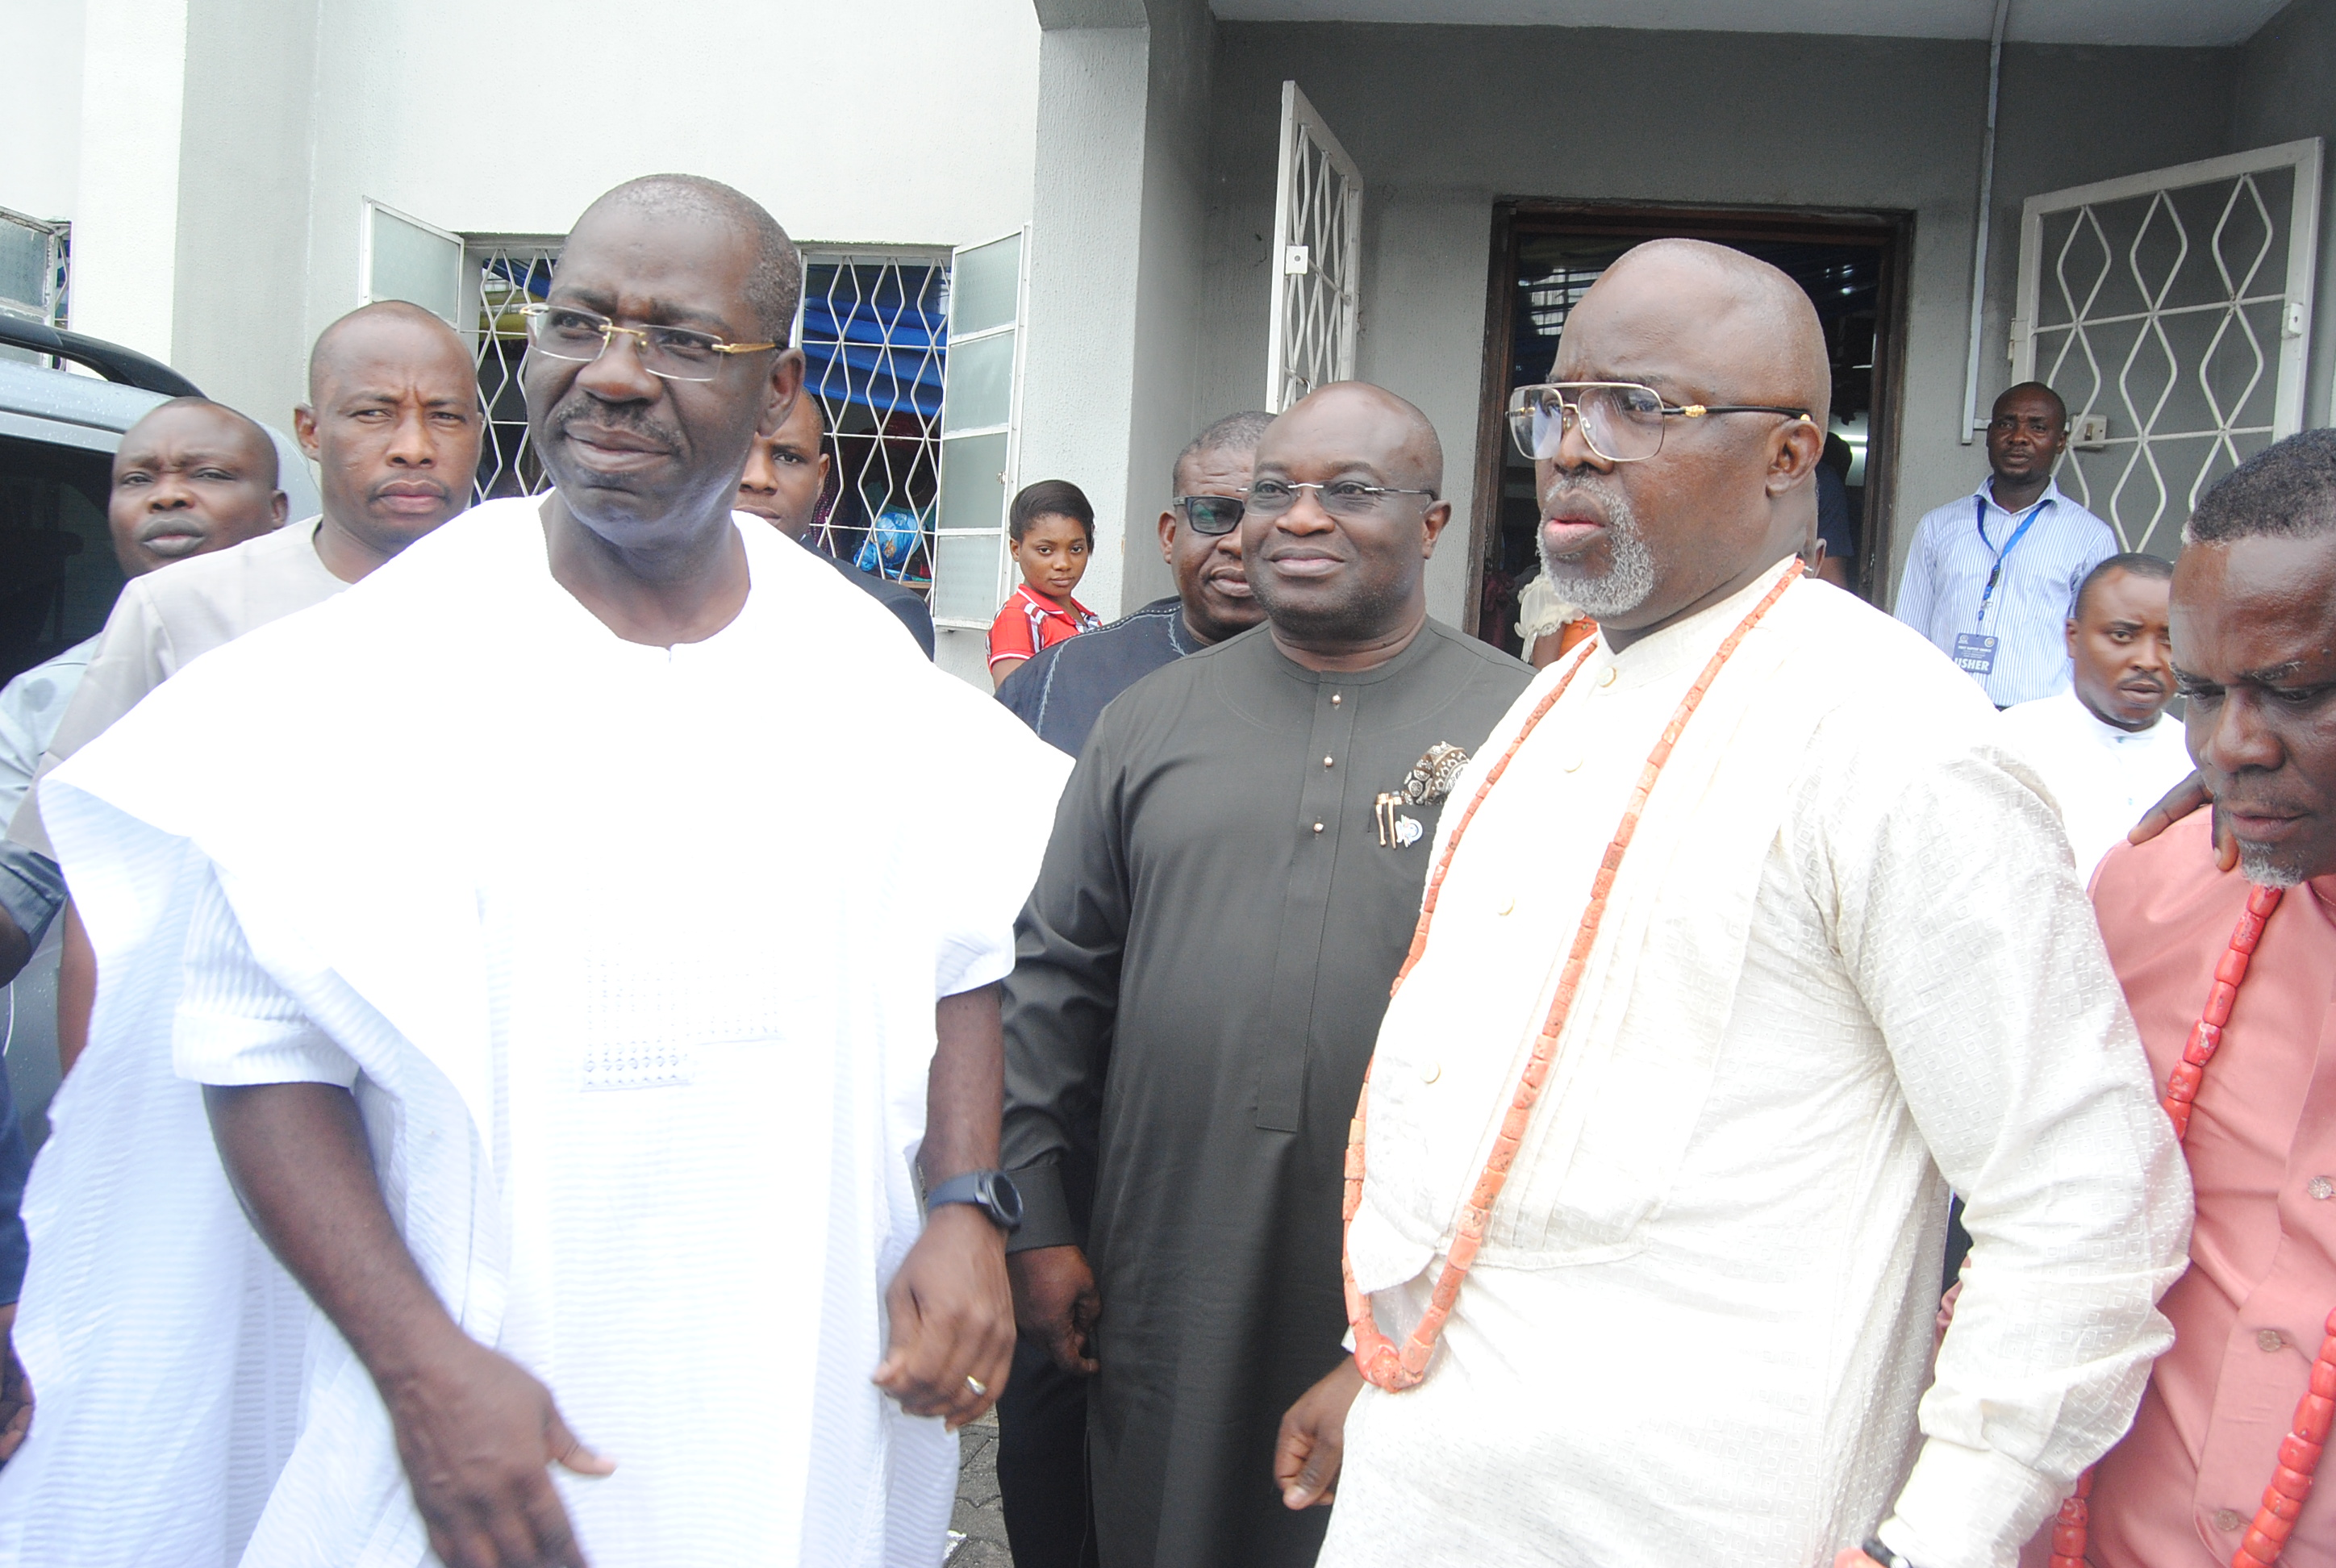 Edo, Abia Governors say Pinnick new position a plus for Nigeria